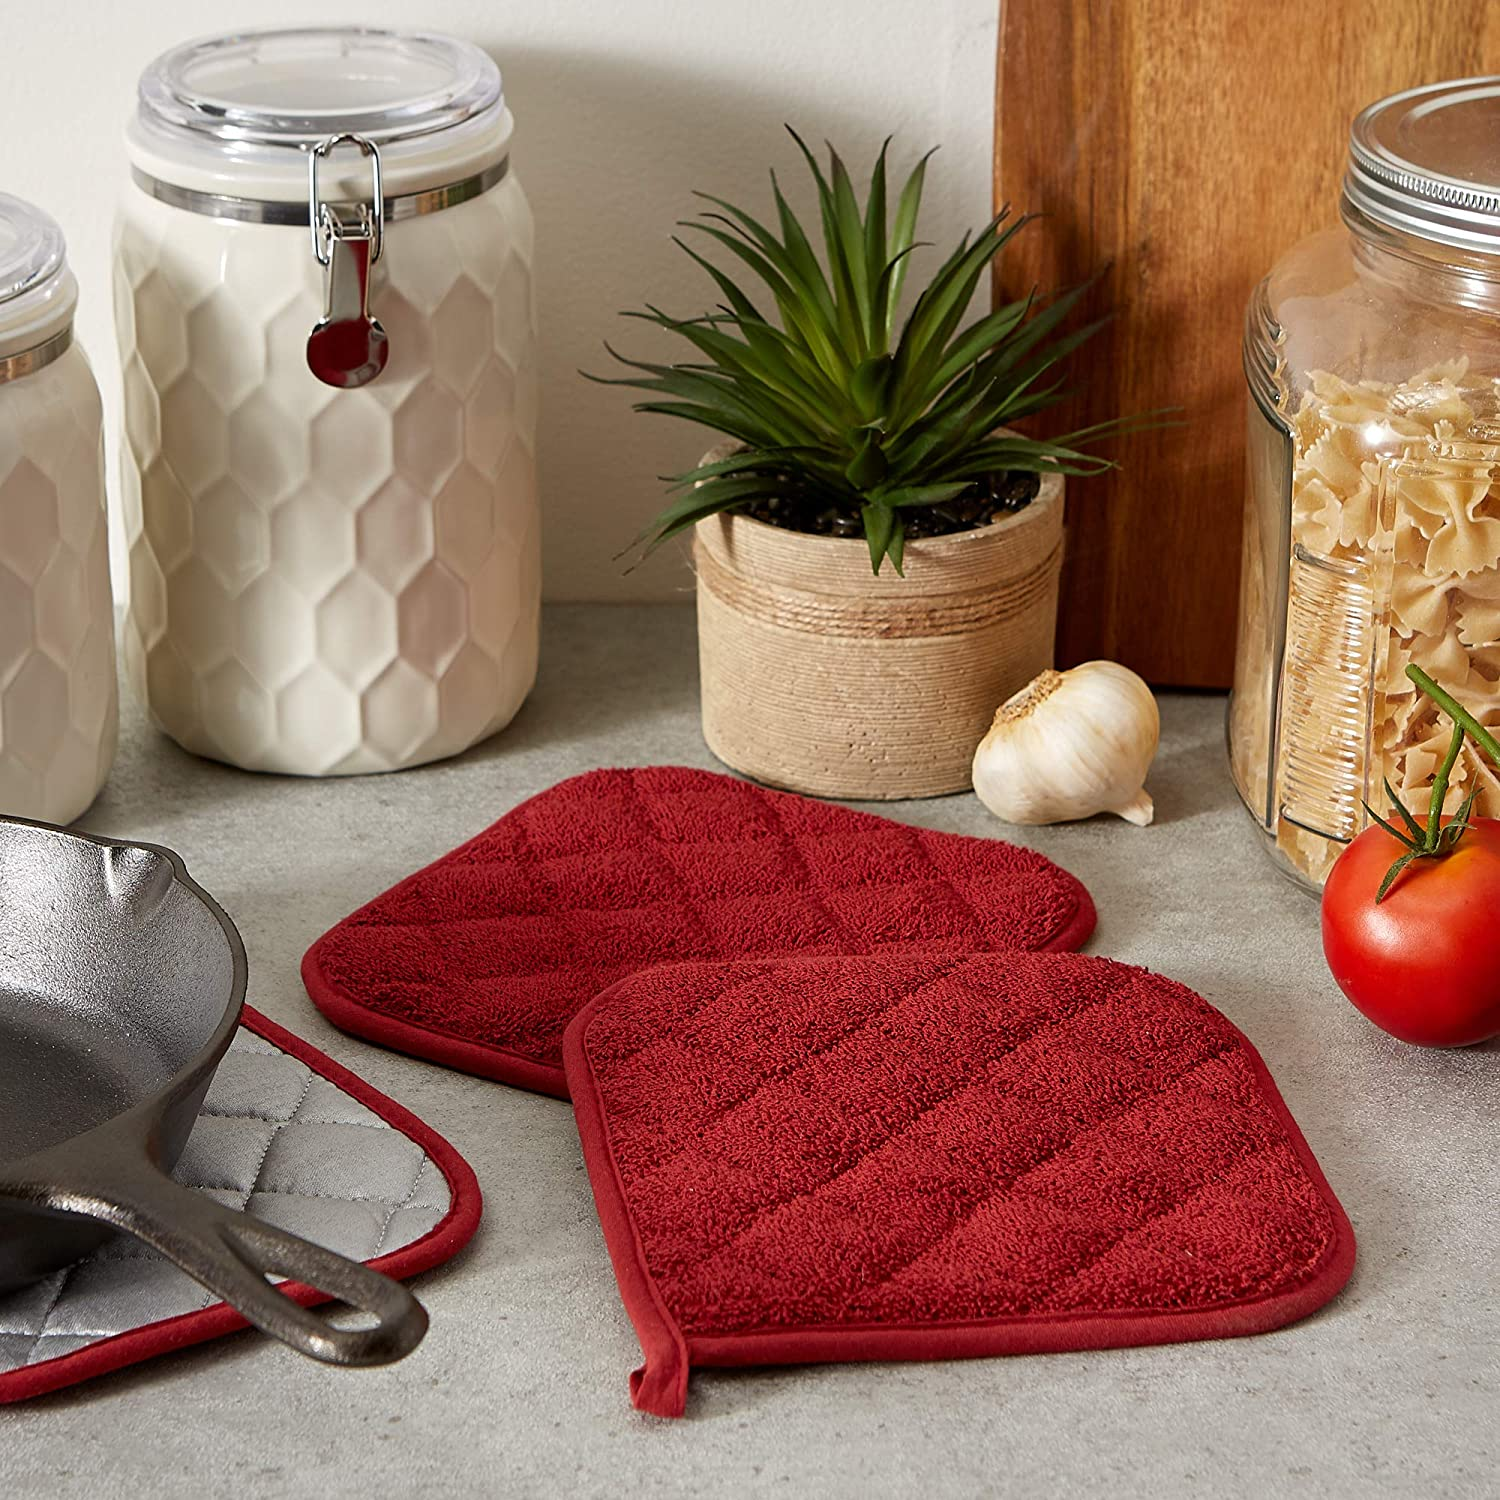 Quilted Terry Oven Set Machine Washable 7 x 7 3 Piece Barn Red DII 100/% Cotton Heat Resistant with Hanging Loop Potholder